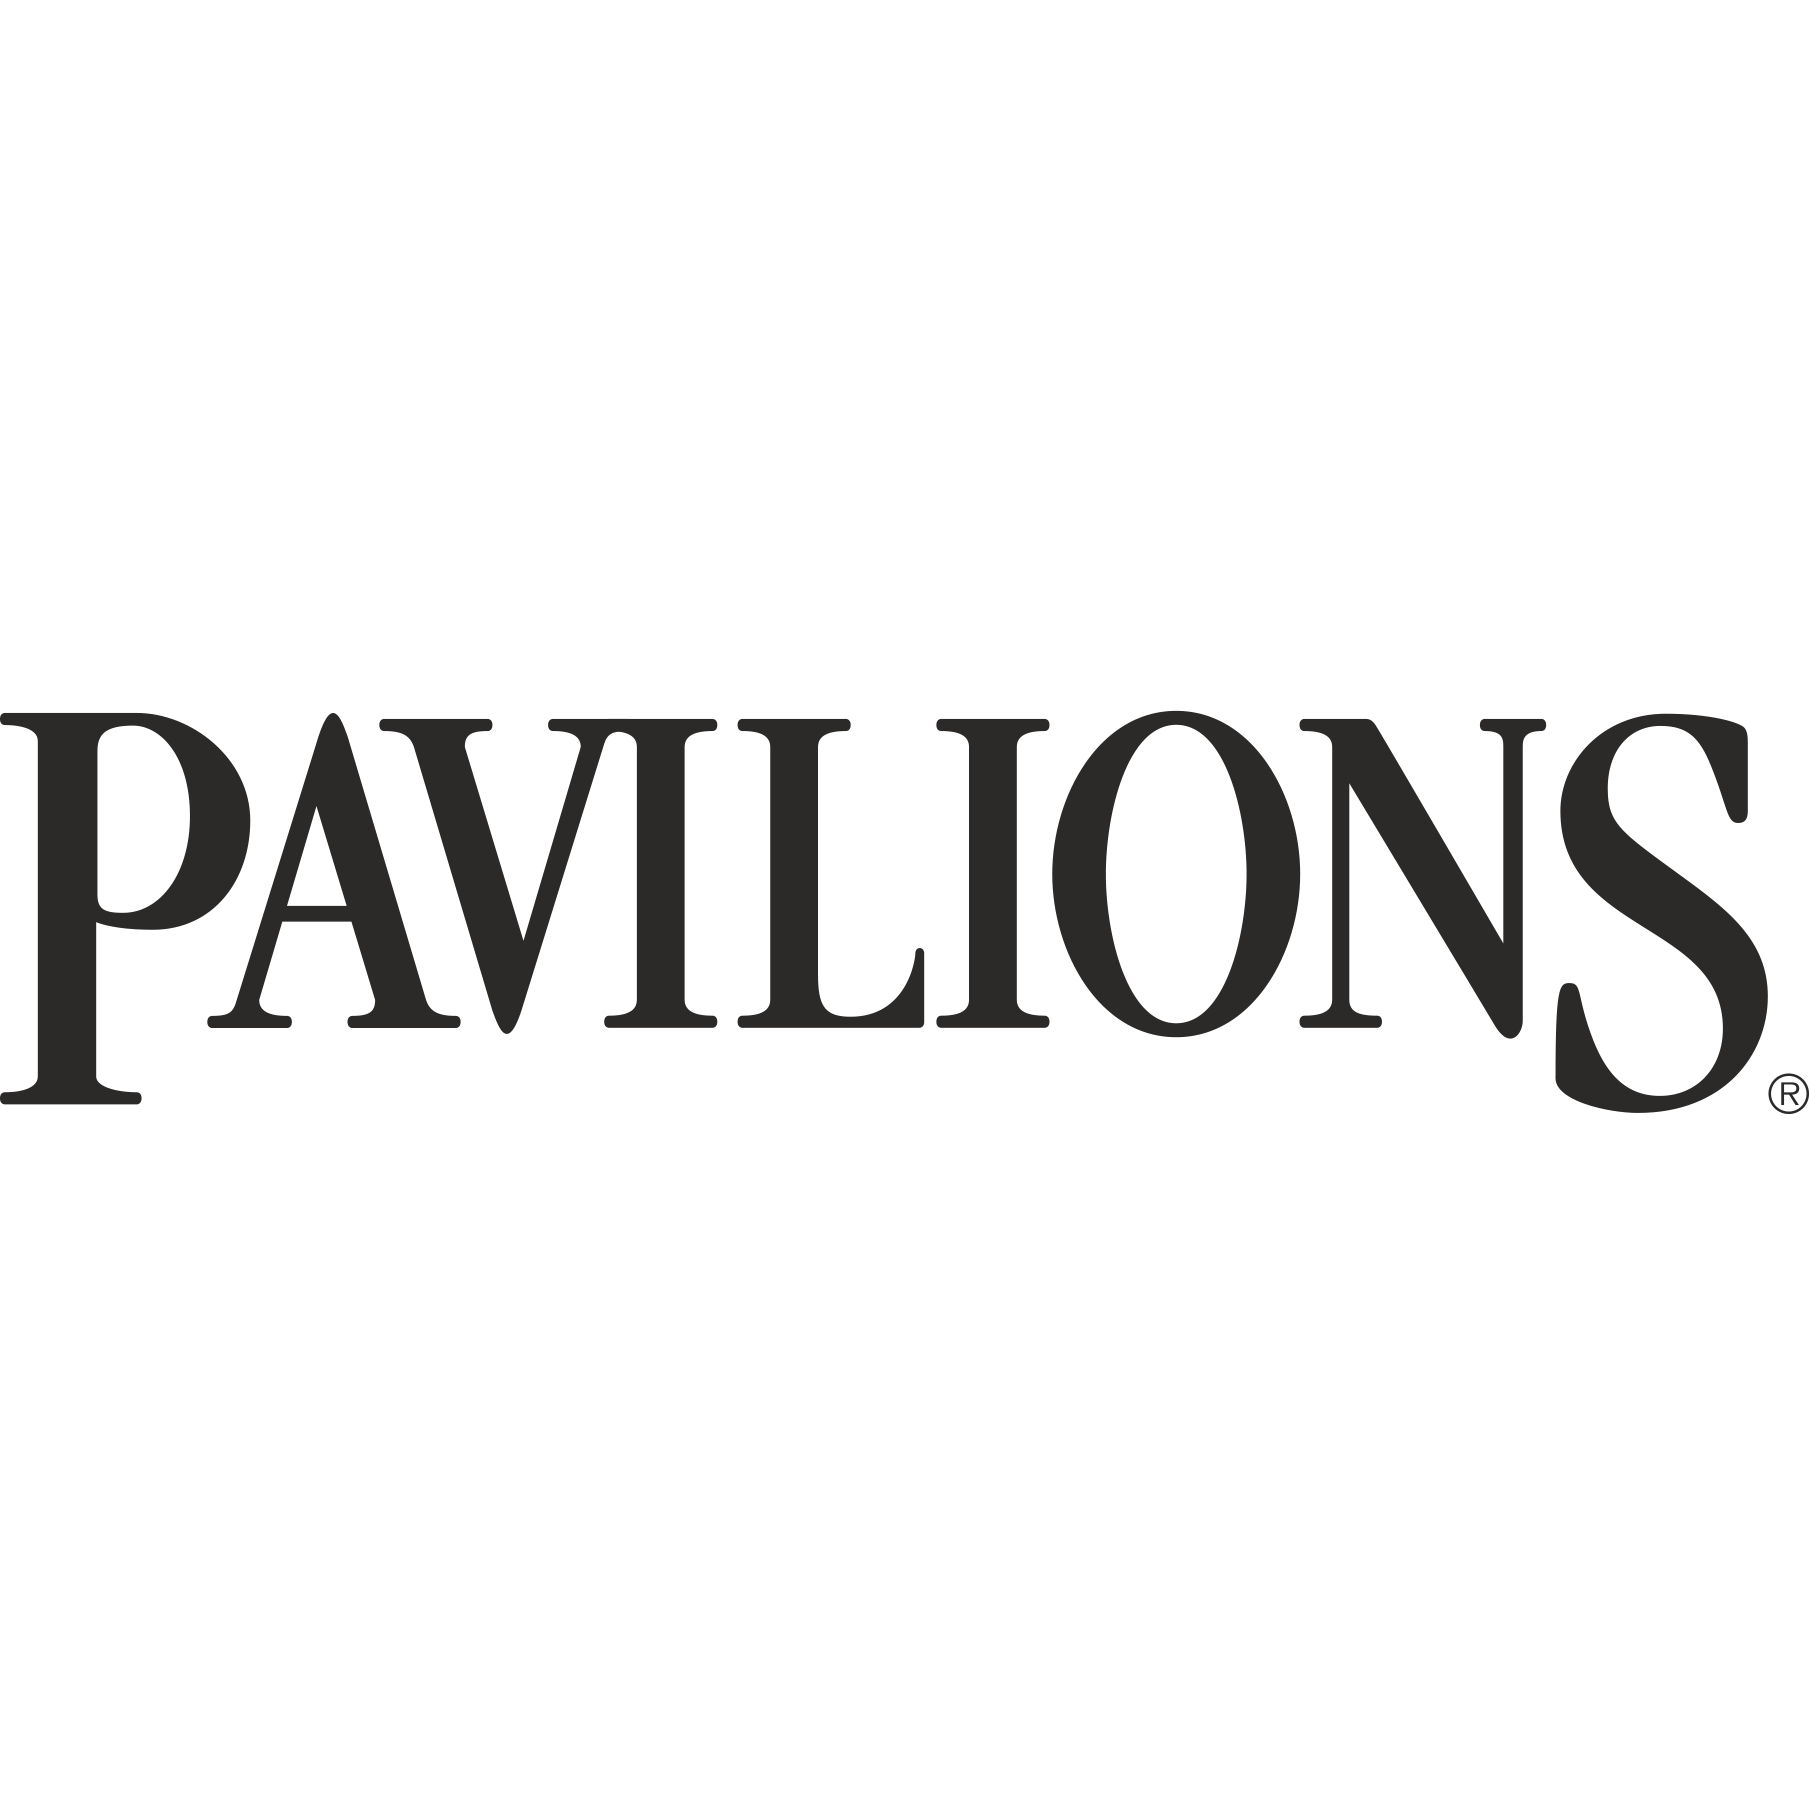 Pavilions - Culver City, CA - Grocery Stores